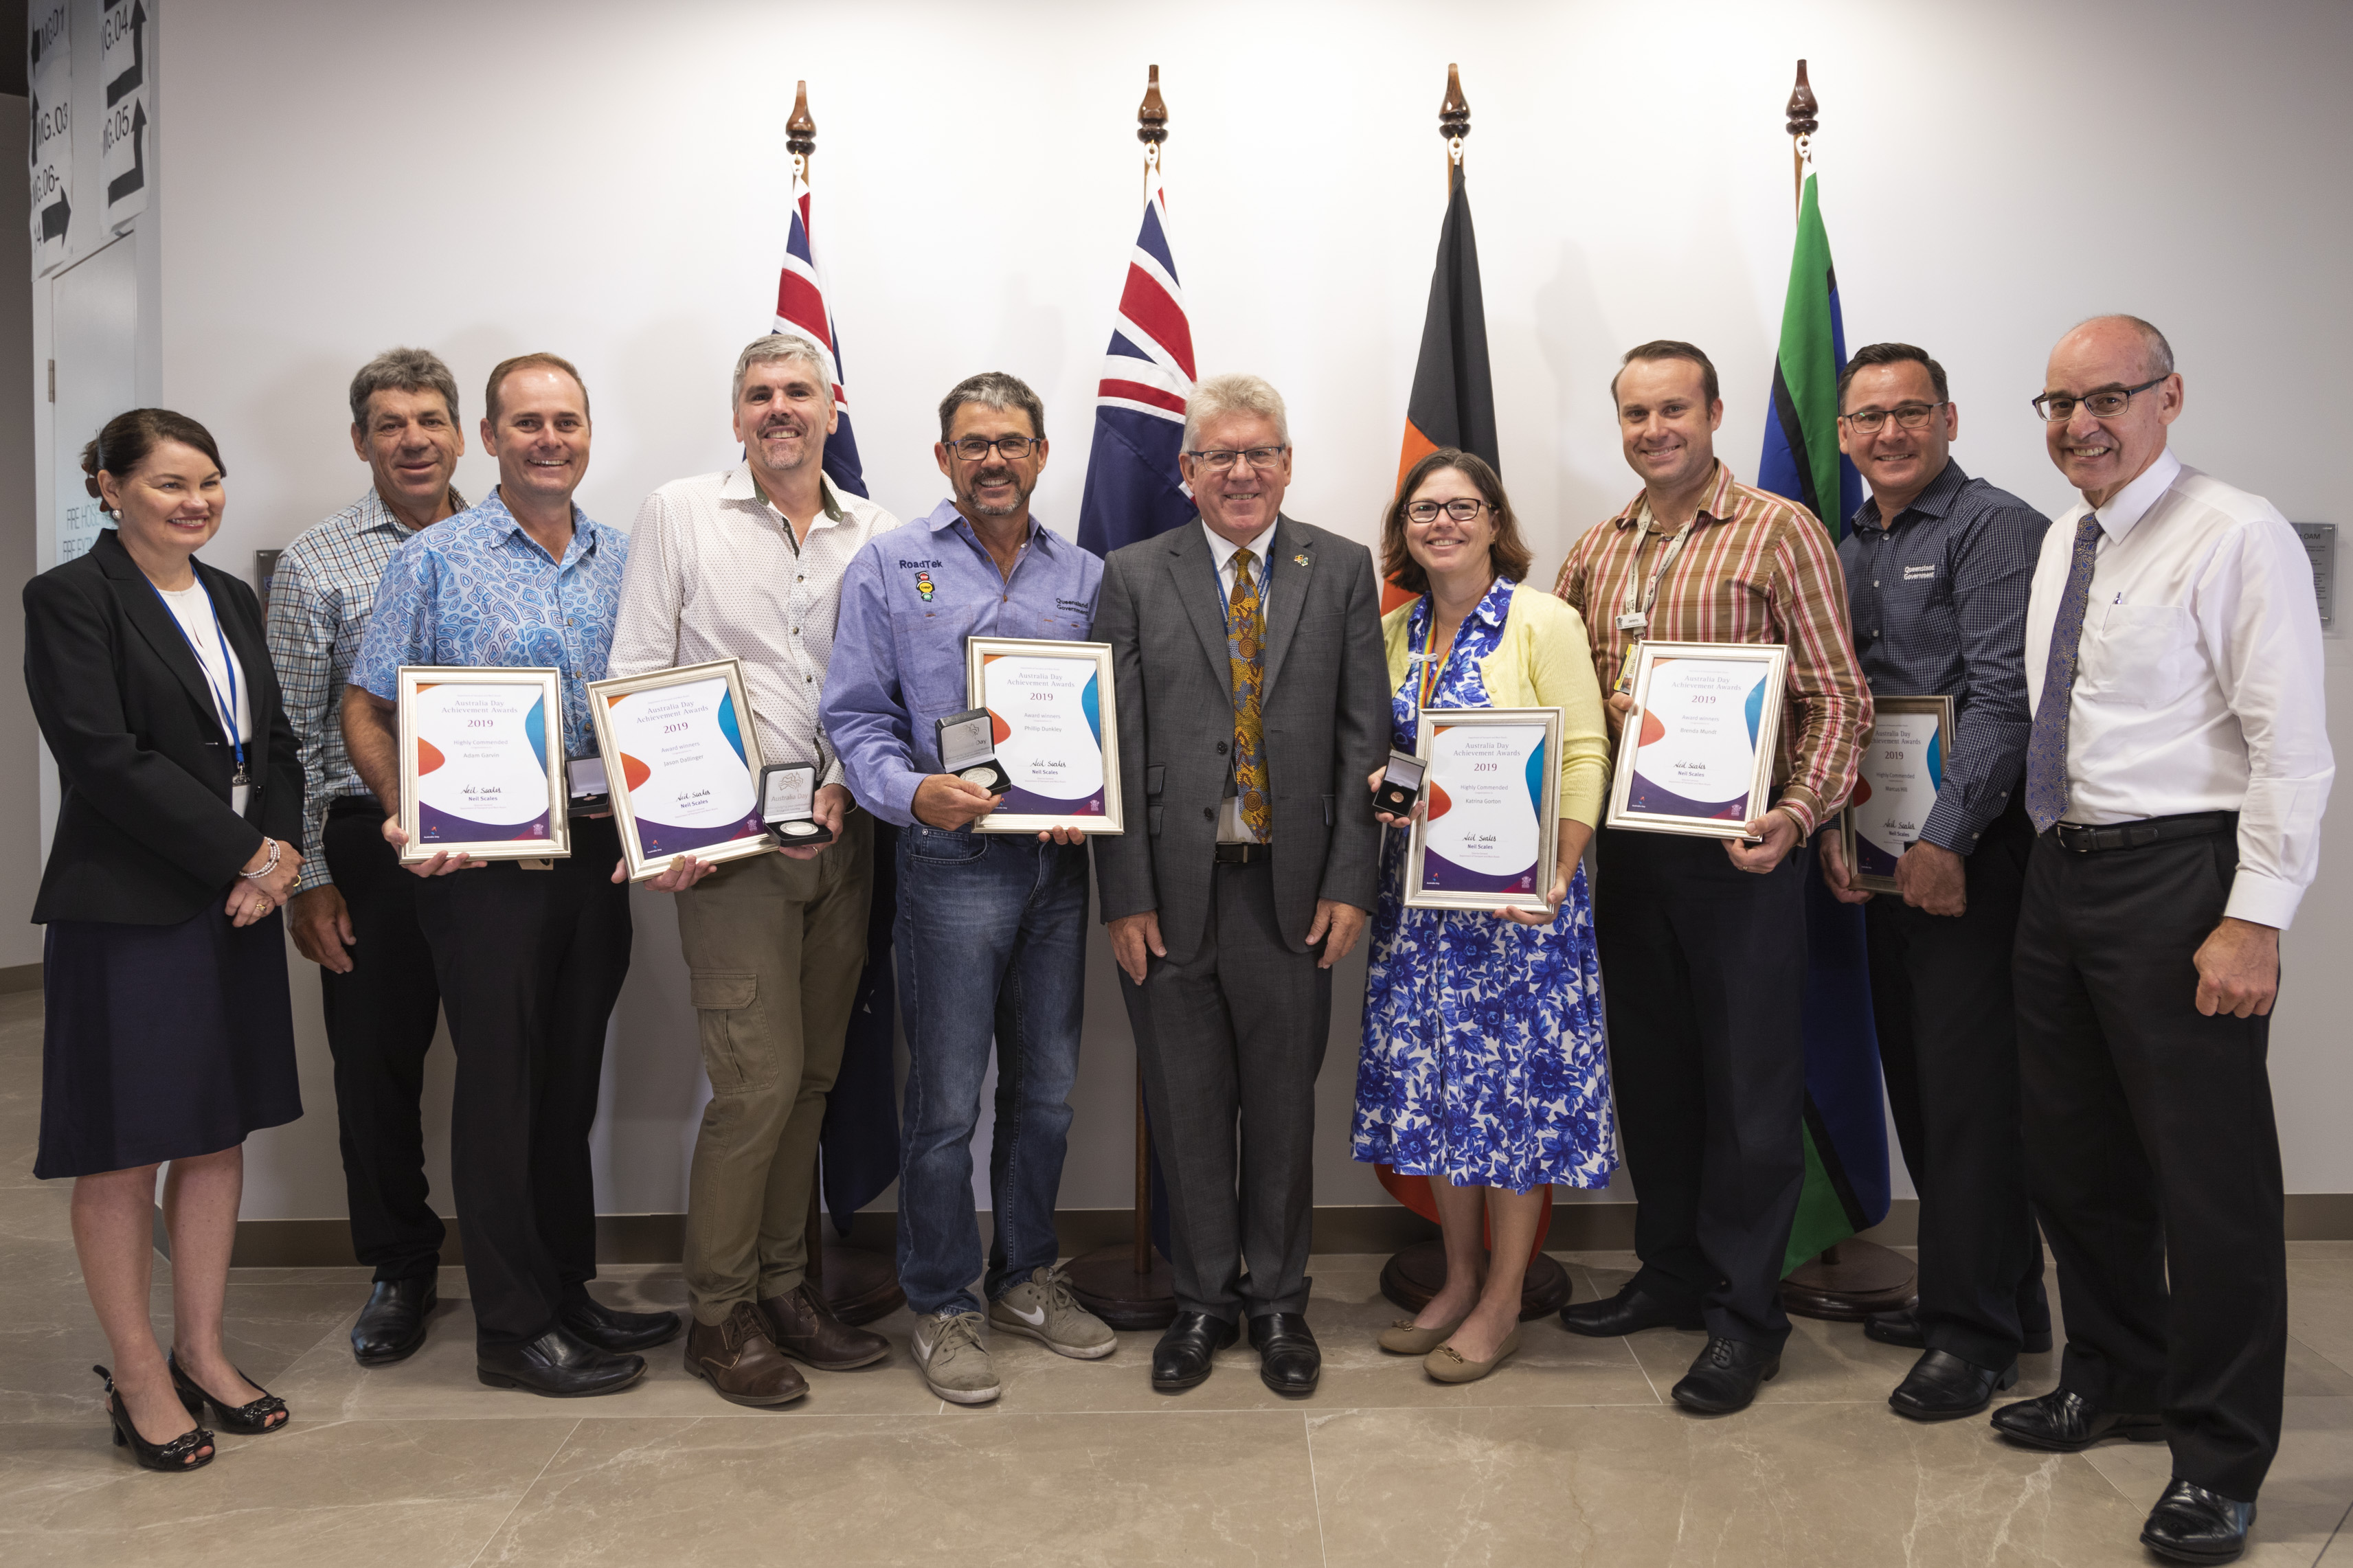 Director-General Neil Scales, Deputy Director-General (CSSR) Mike Stapleton and Deputy Director-General (Corporate) Tracy O'Bryan with the award recipients at the Australia Day Awards.